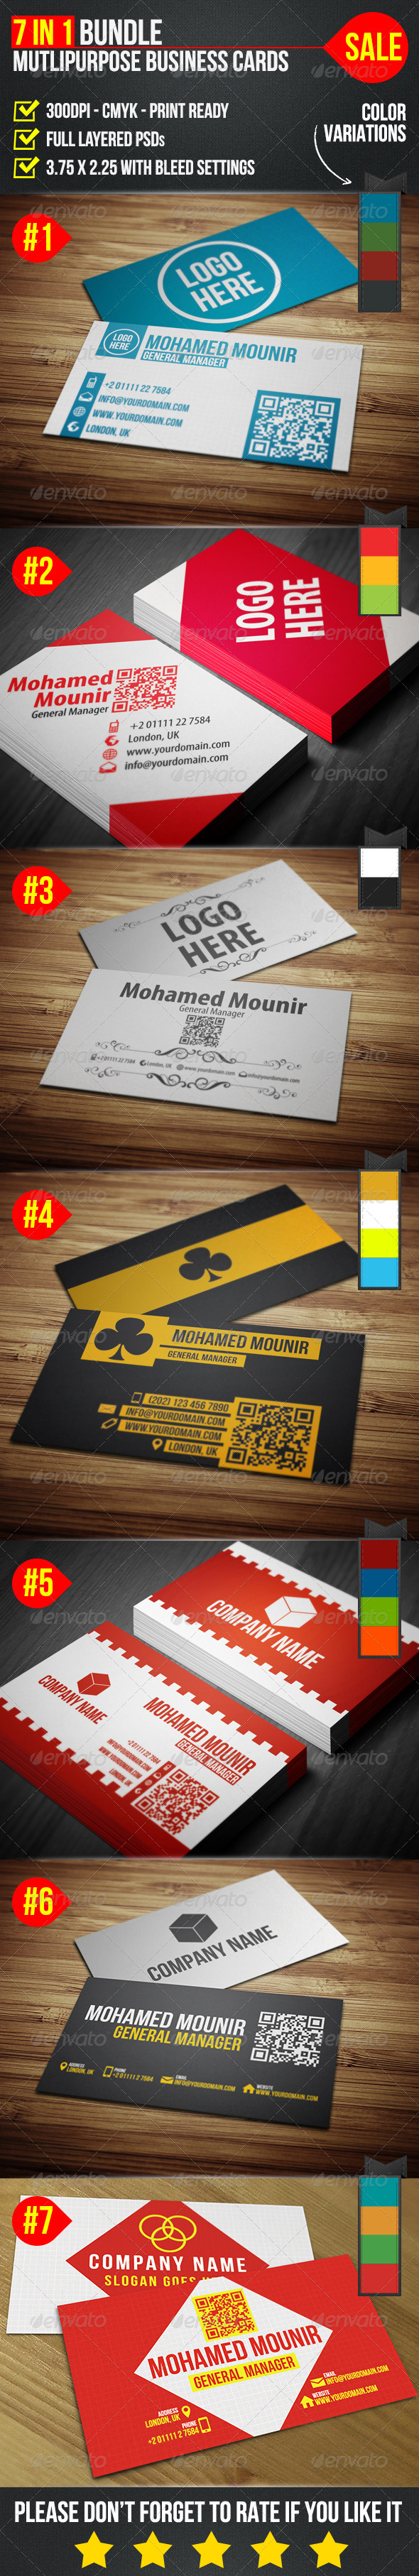 GraphicRiver Multipurpose Business Cards Bundle 4485137